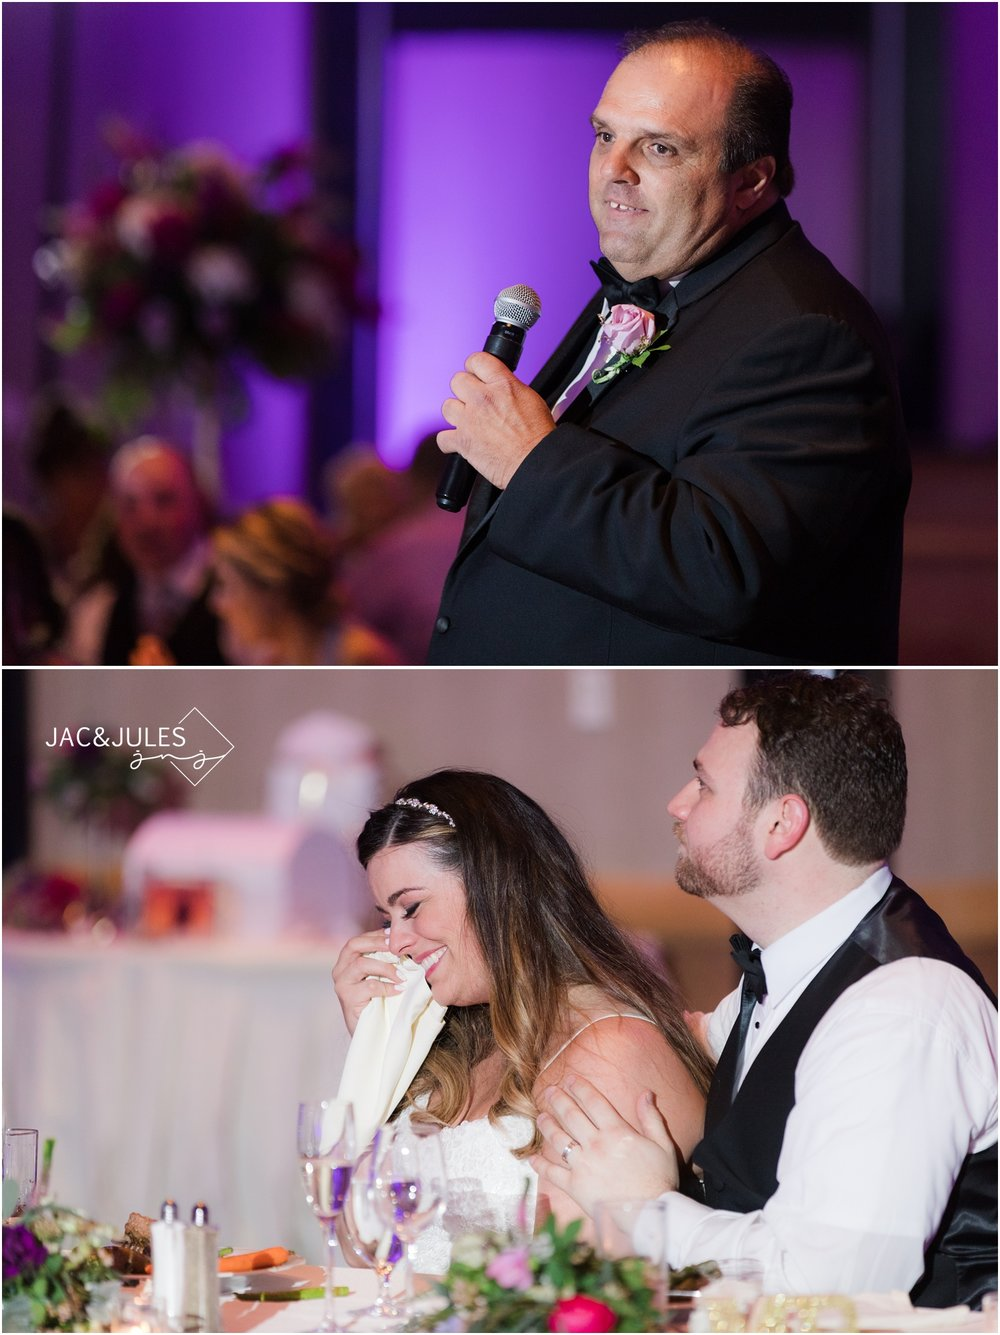 emotional speech from Father of the bride during wedding reception at The Heldrich in New Brunswick, NJ.